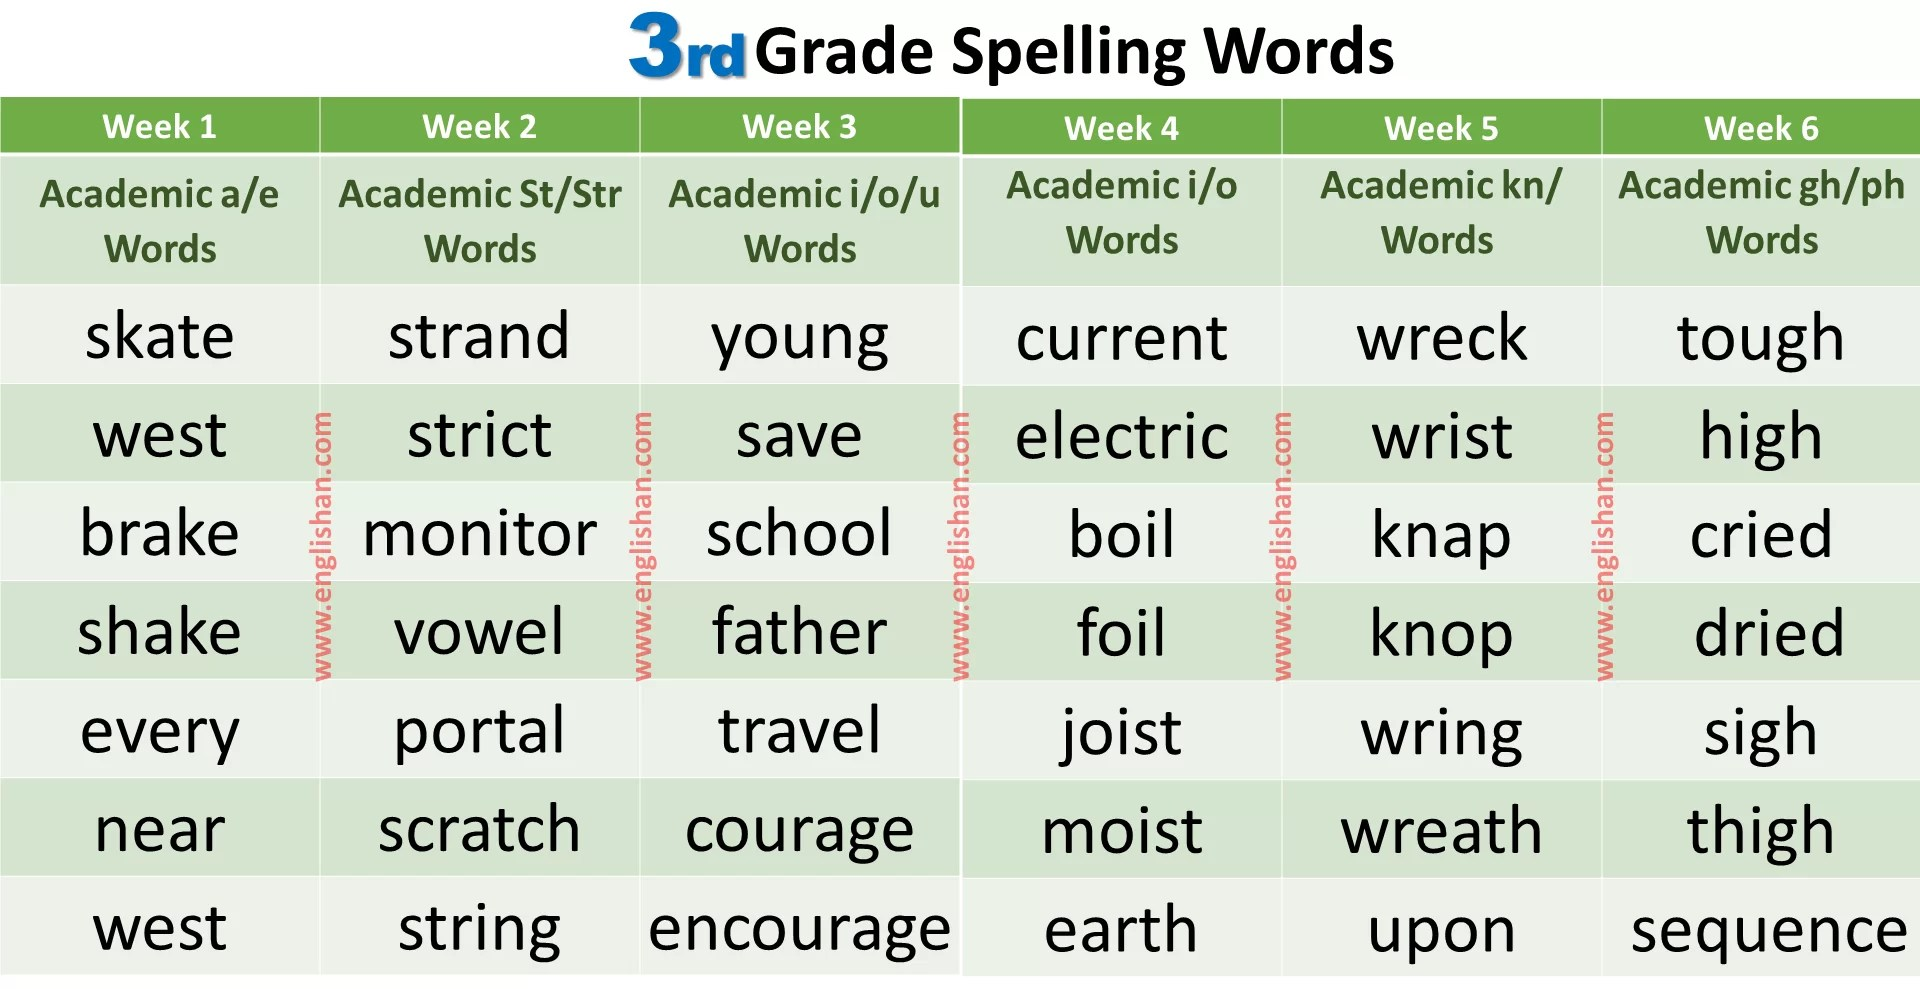 3rd Grade Spelling Words List